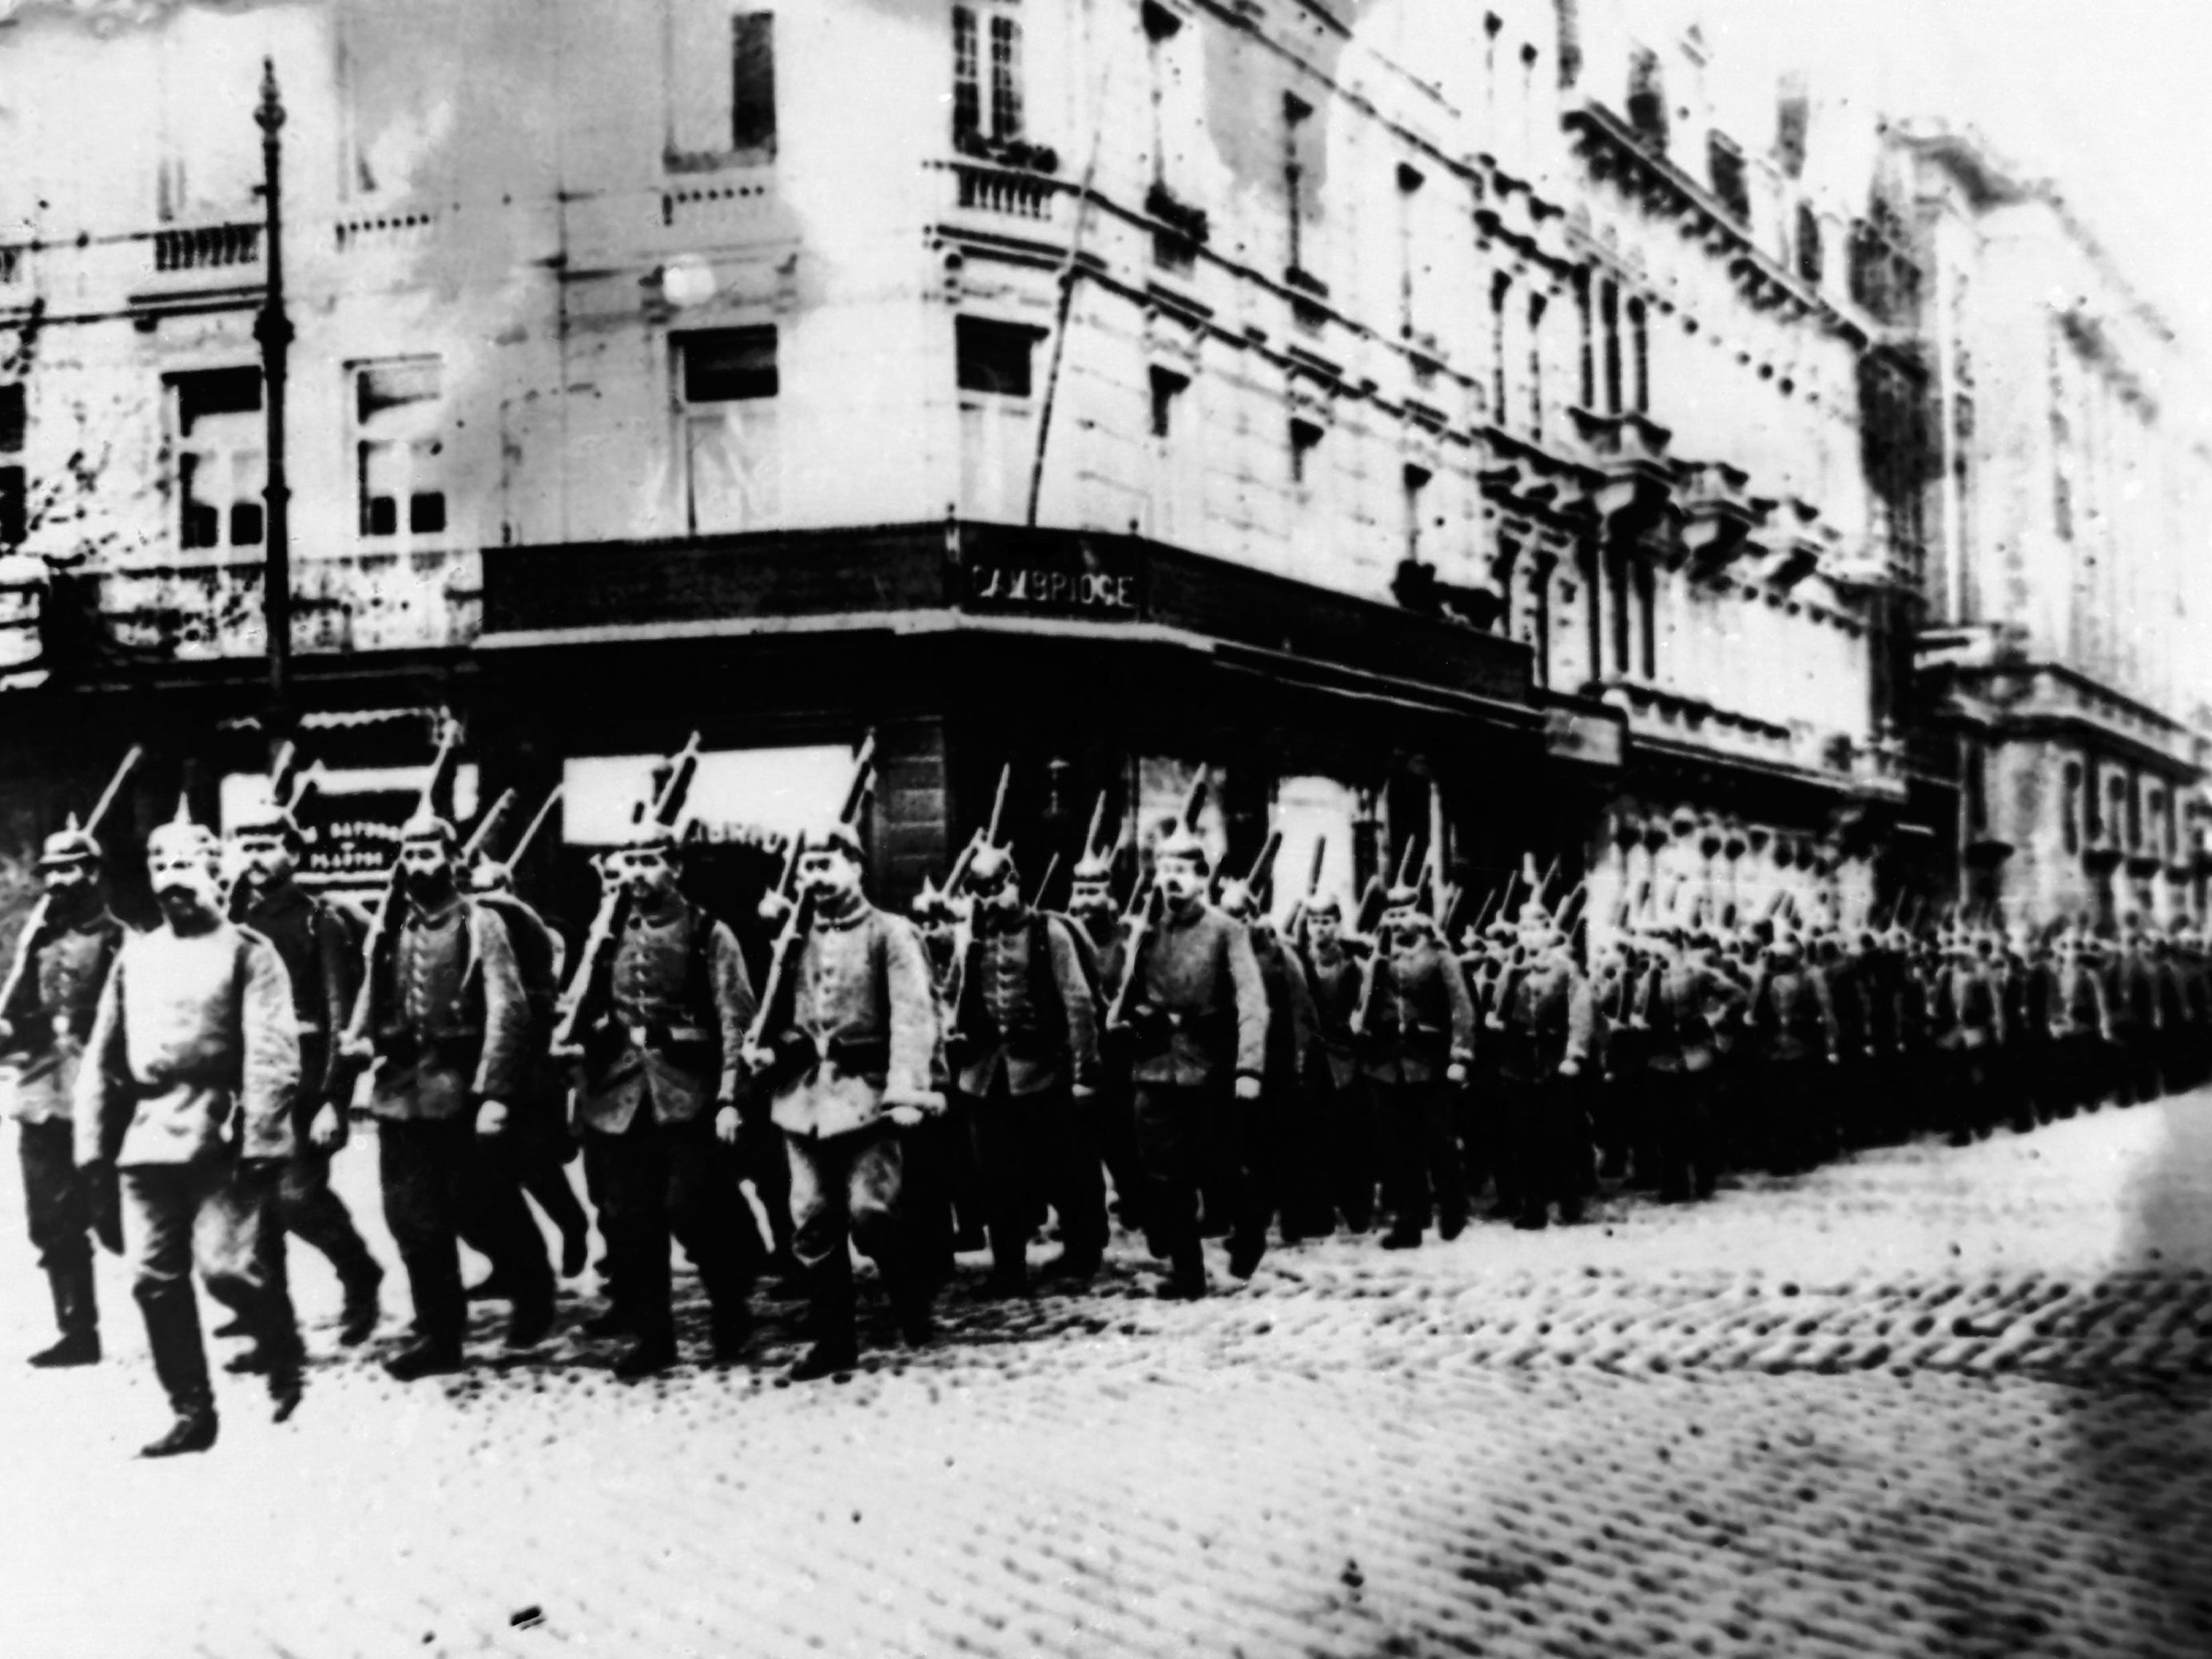 In this 1914 photo, German troops march through the streets of Antwerp, Belgium, during World War I.